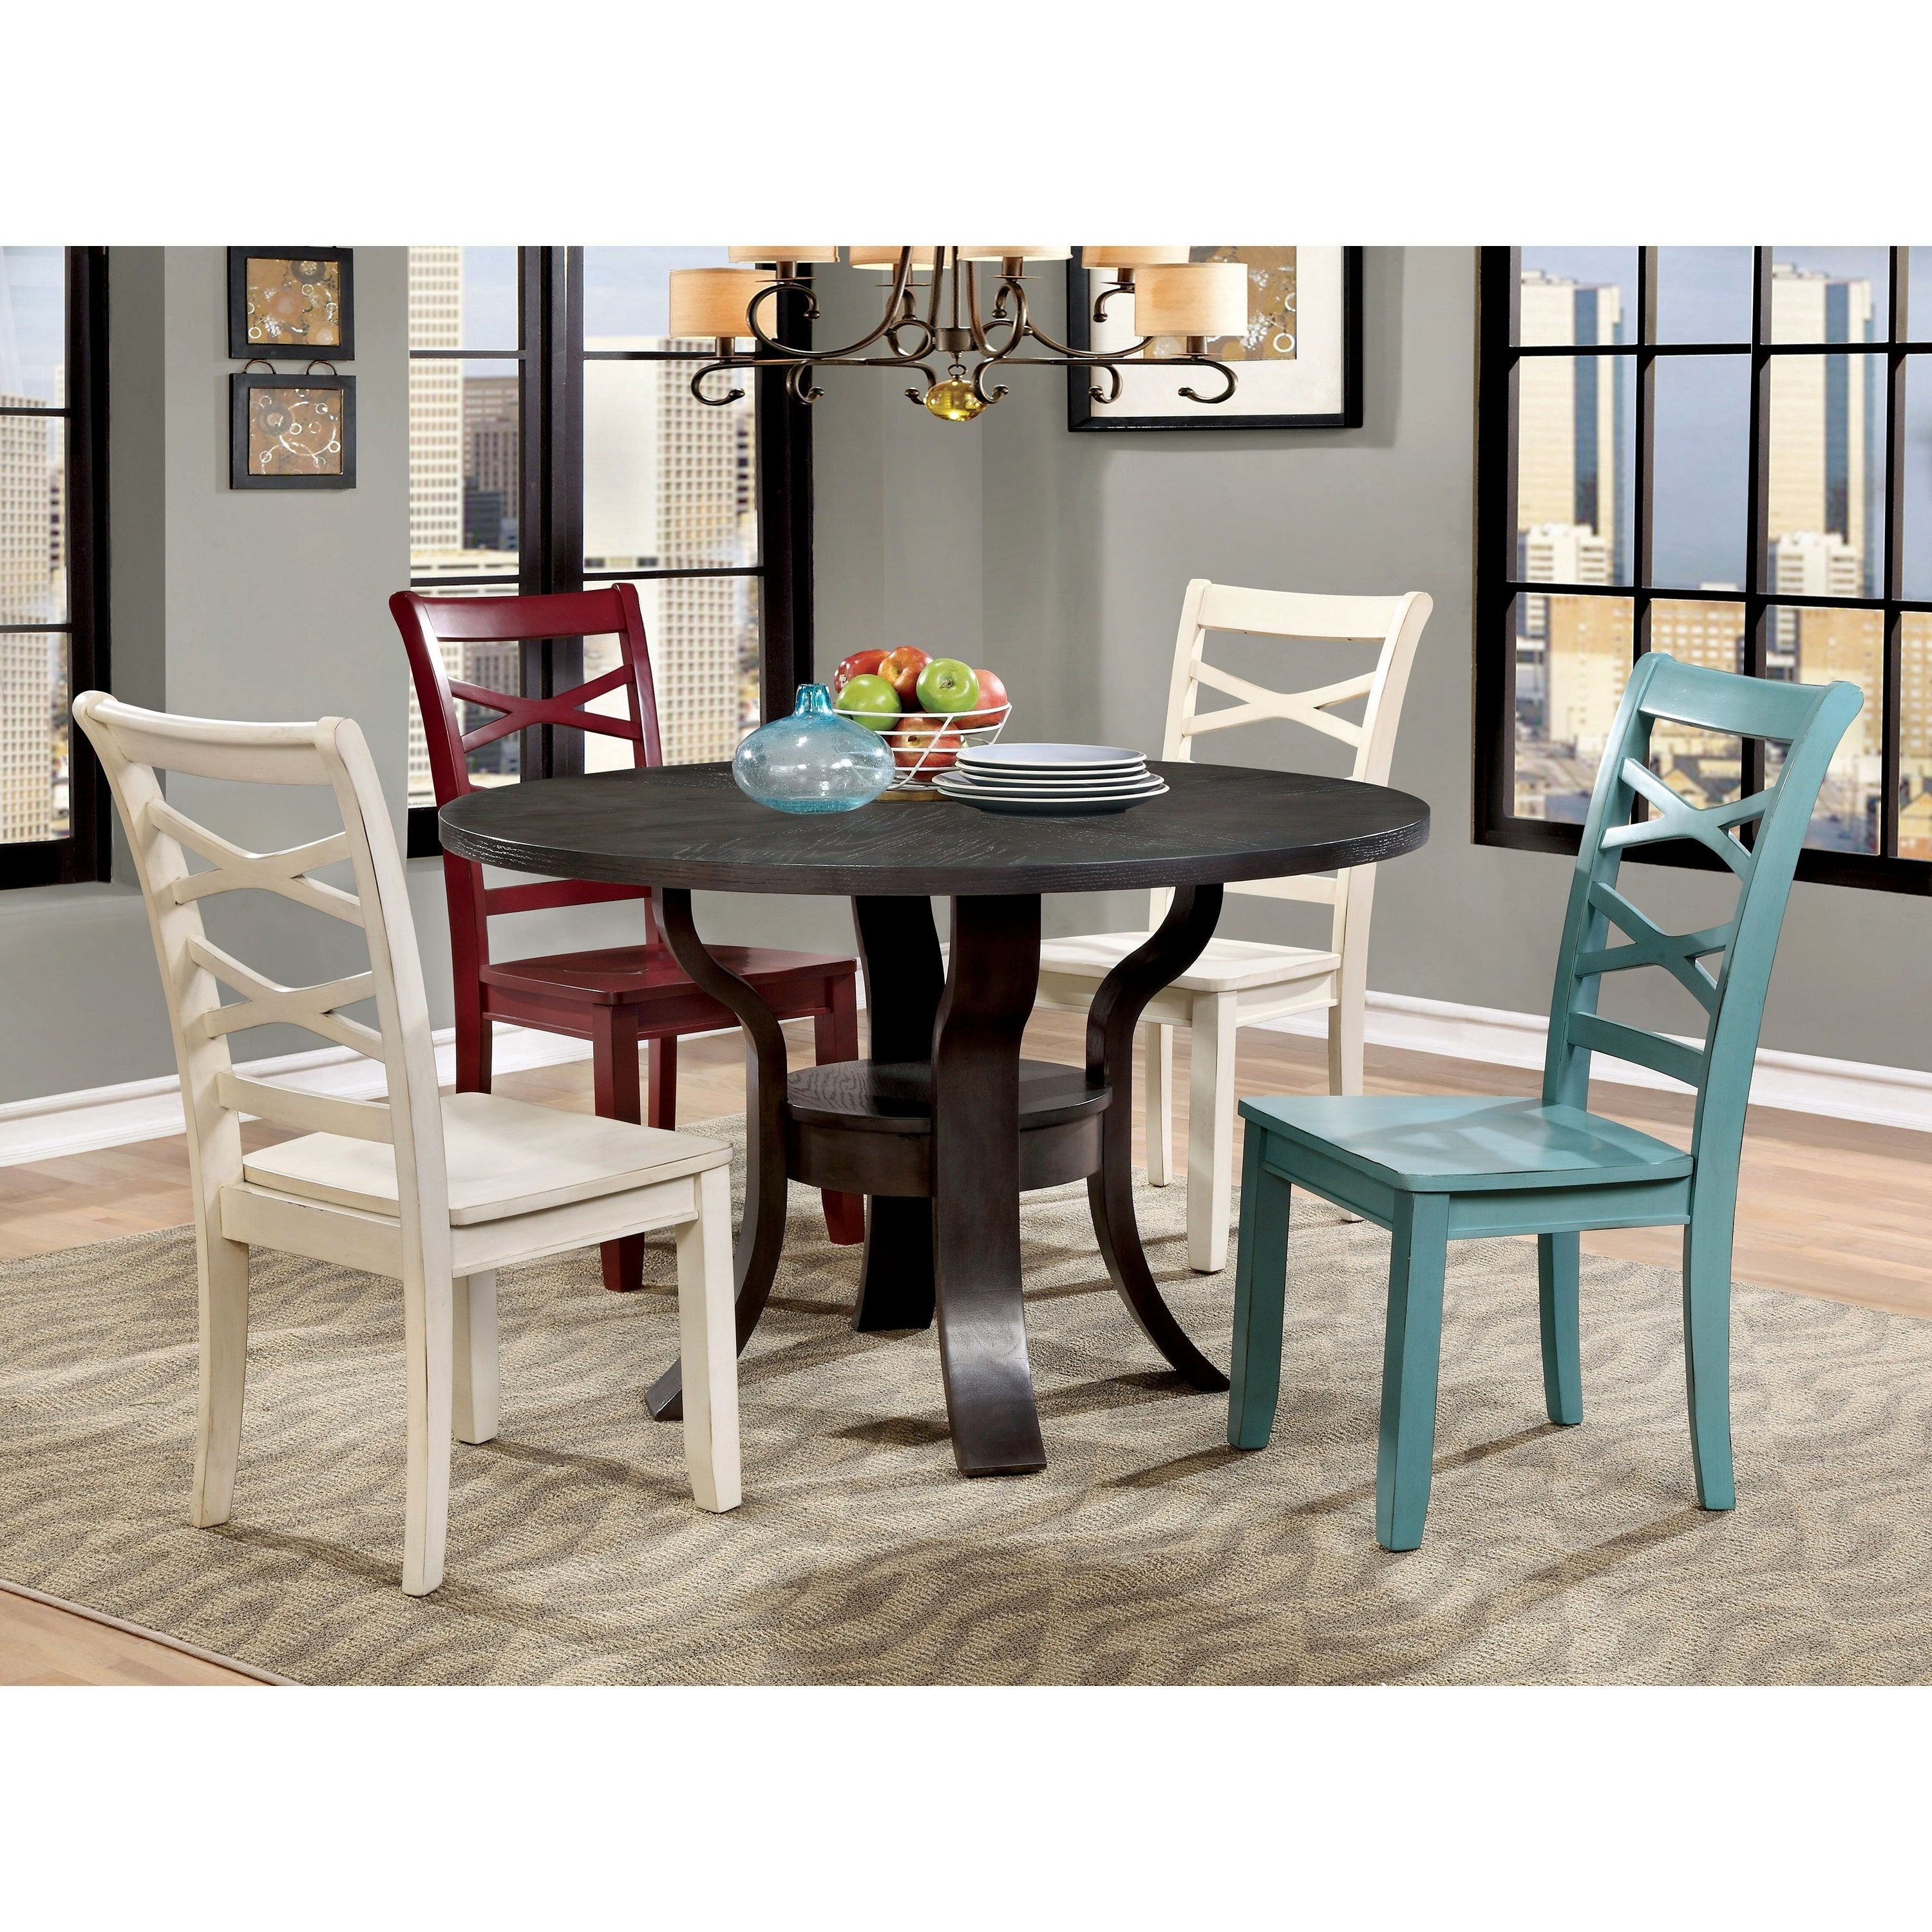 Cargo 5 Piece Dining Sets For Current Russell 5 Piece Dining Table Setfoa (View 5 of 20)